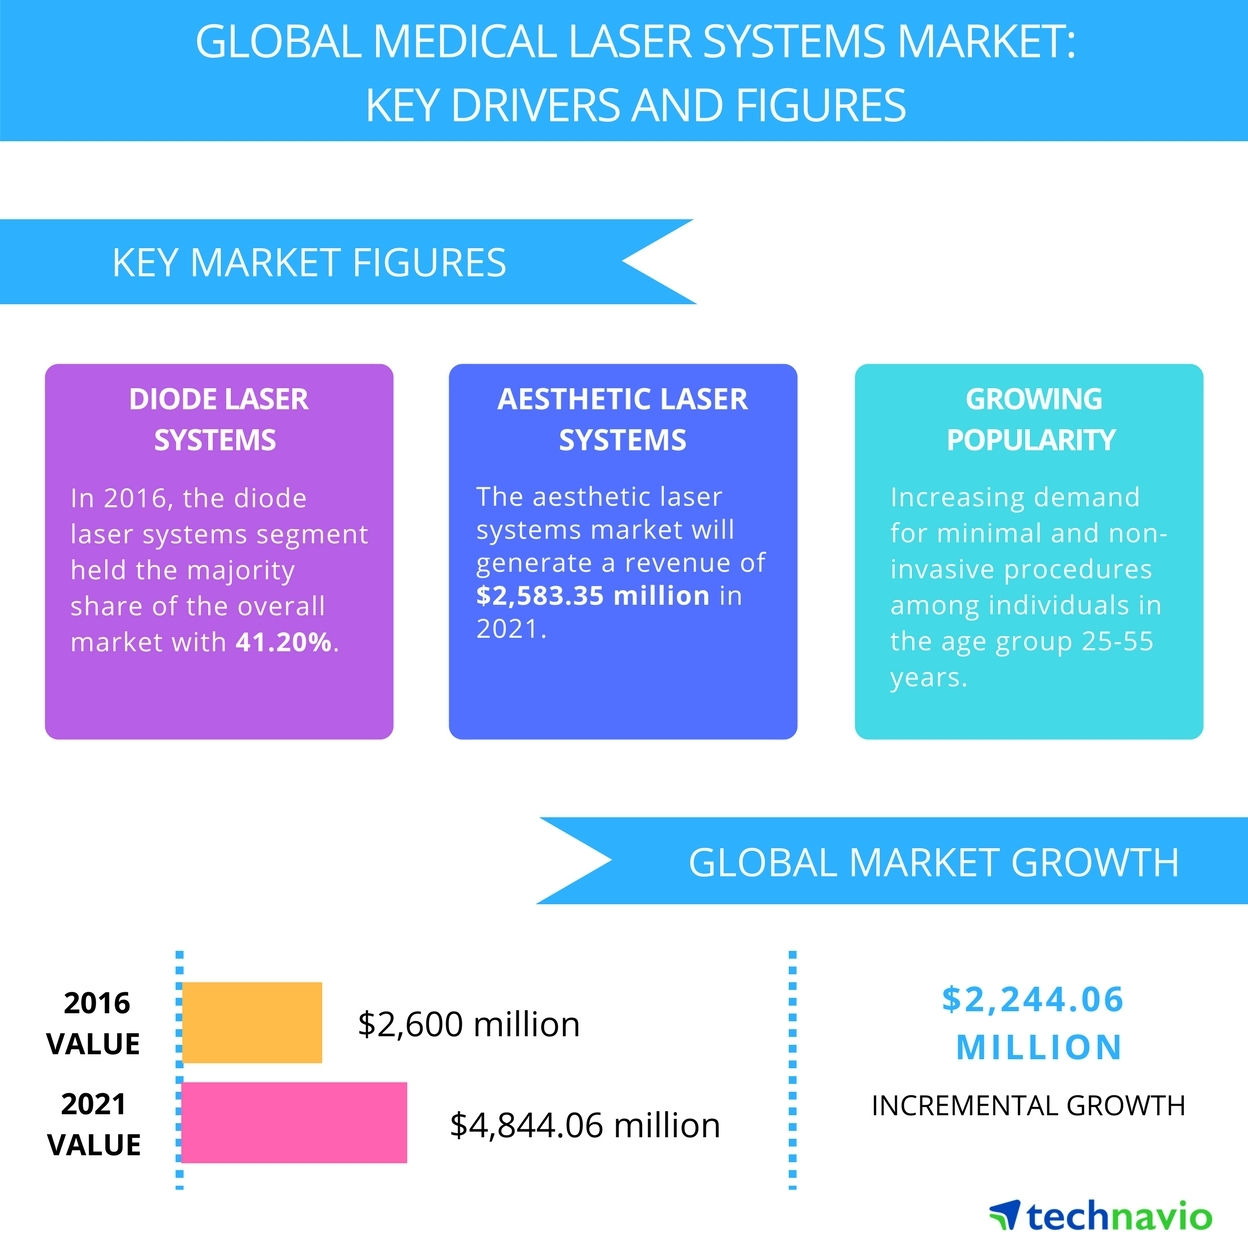 Best Plastic Surgeons In The Us 2021 Top 5 Vendors in the Global Medical Laser Systems Market from 2017